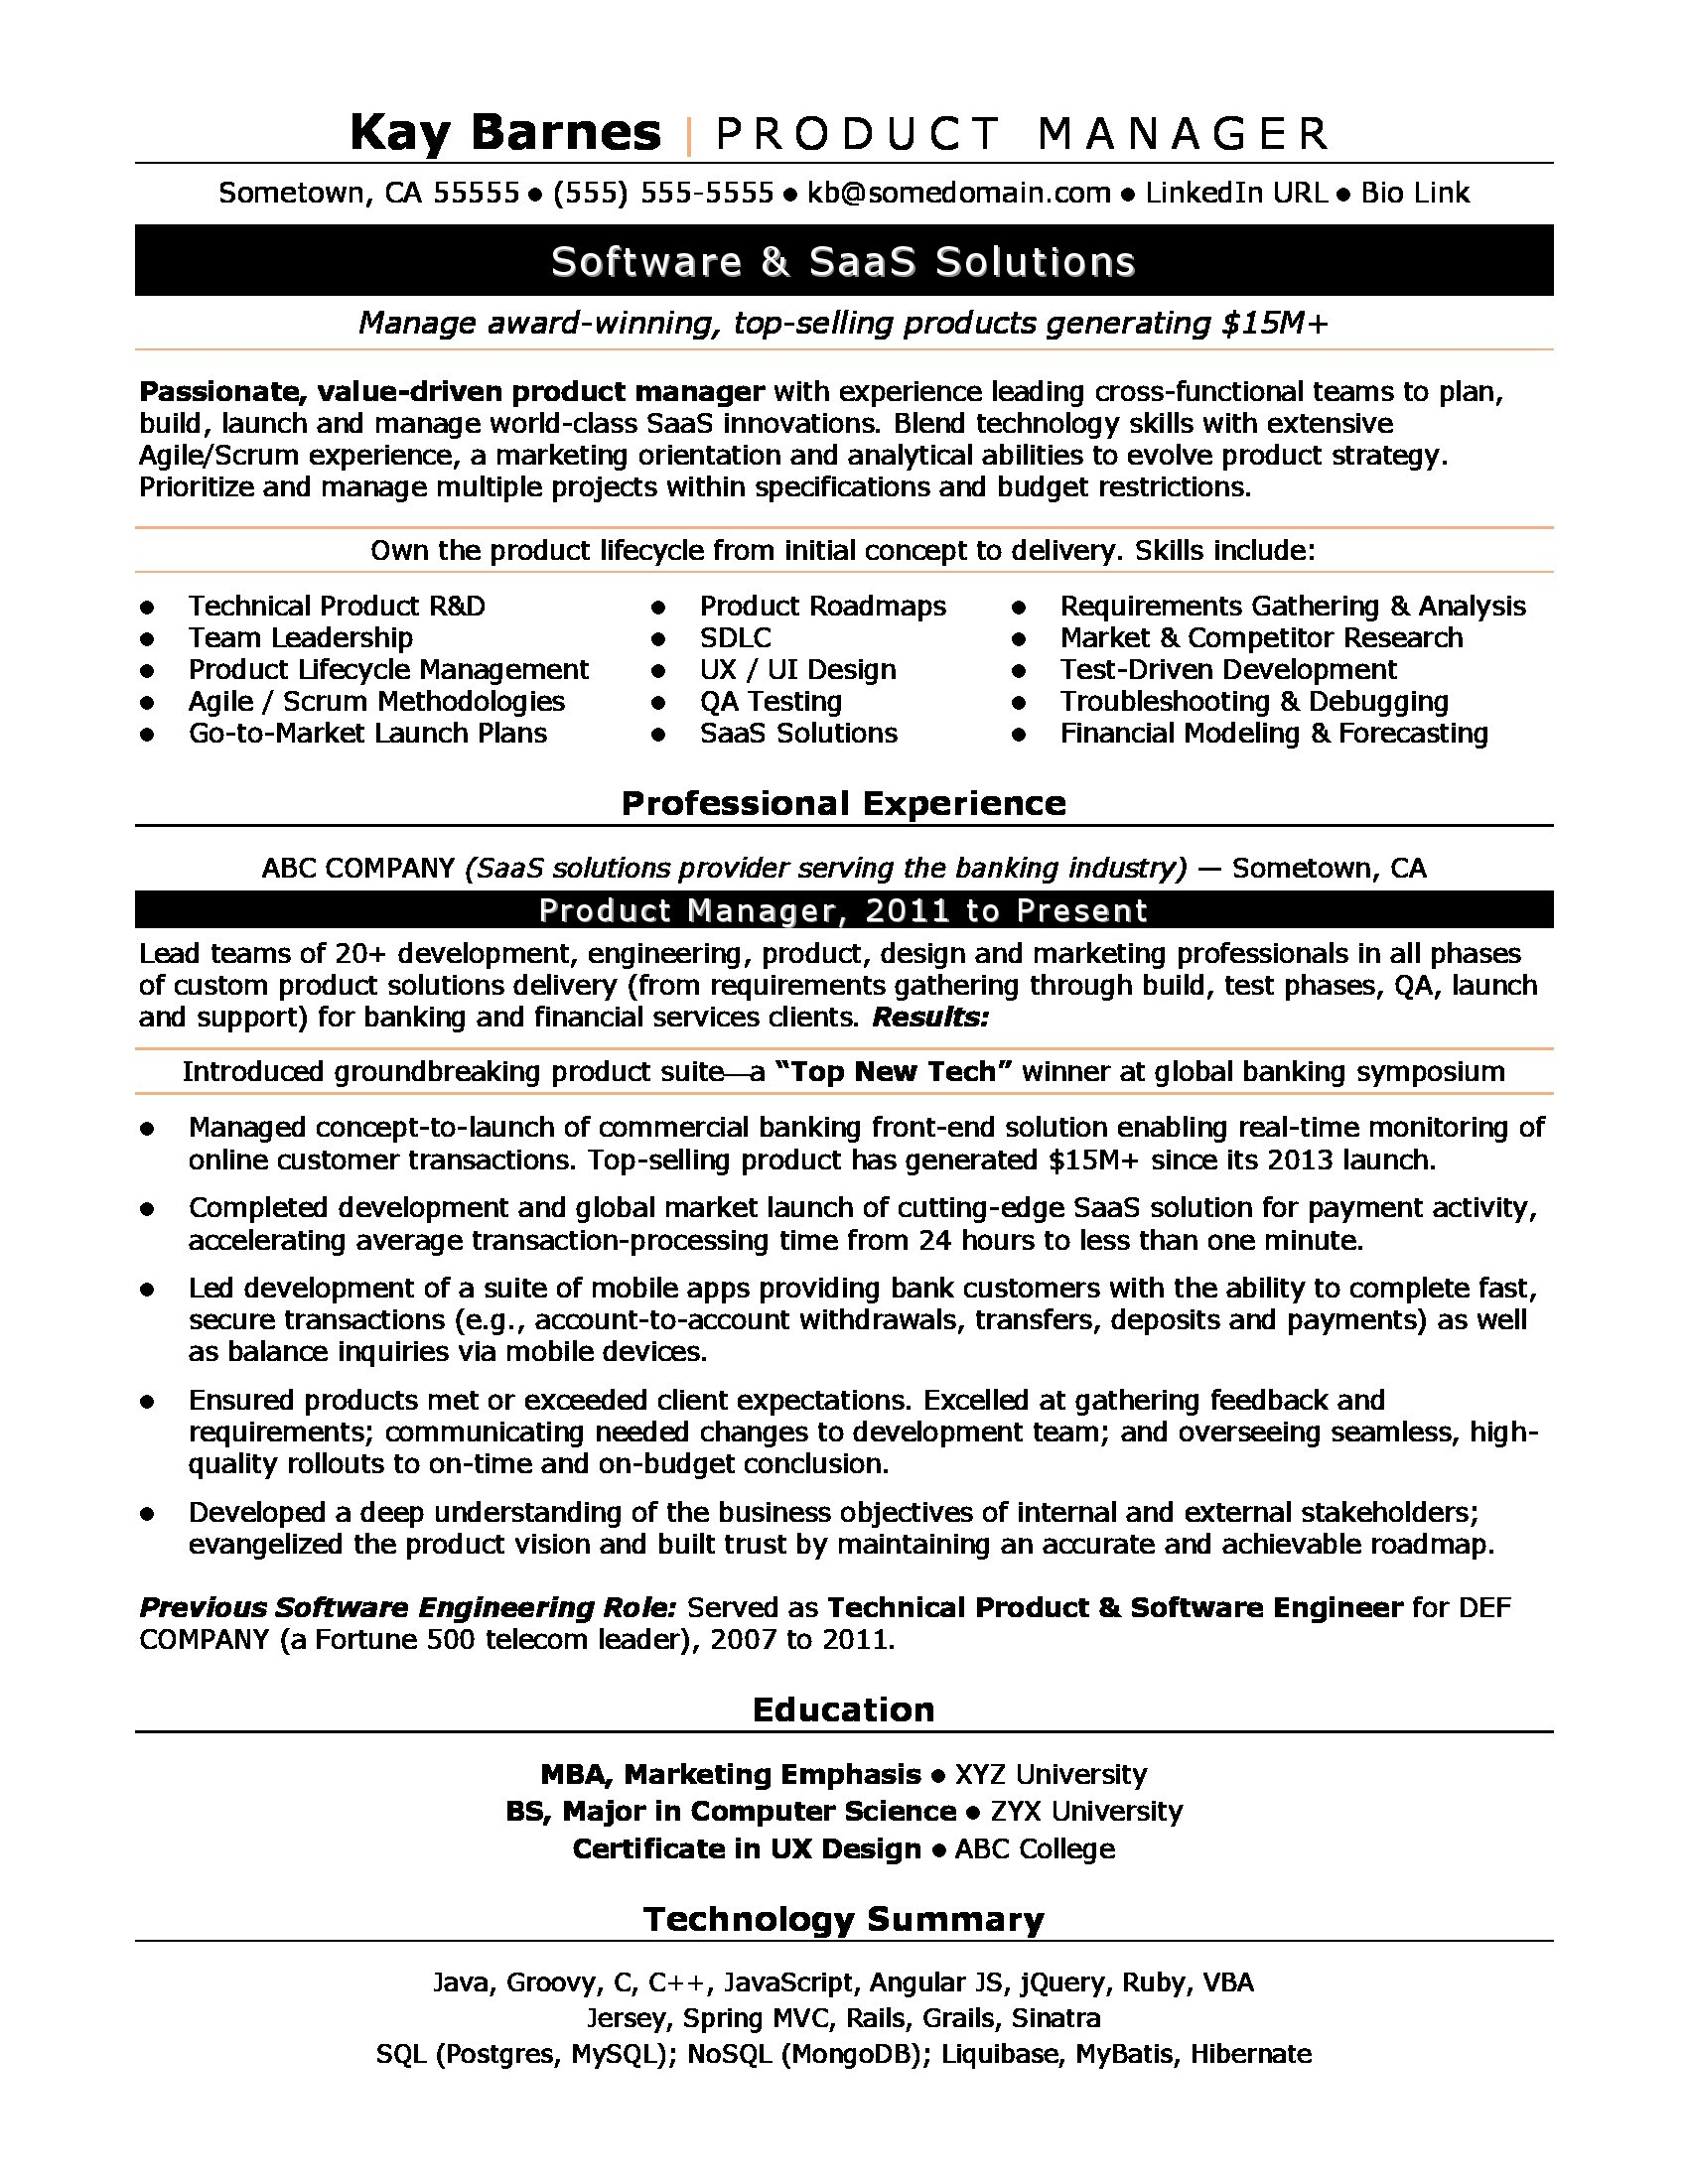 Product Manager Resume Sample  Sample Product Manager Resume